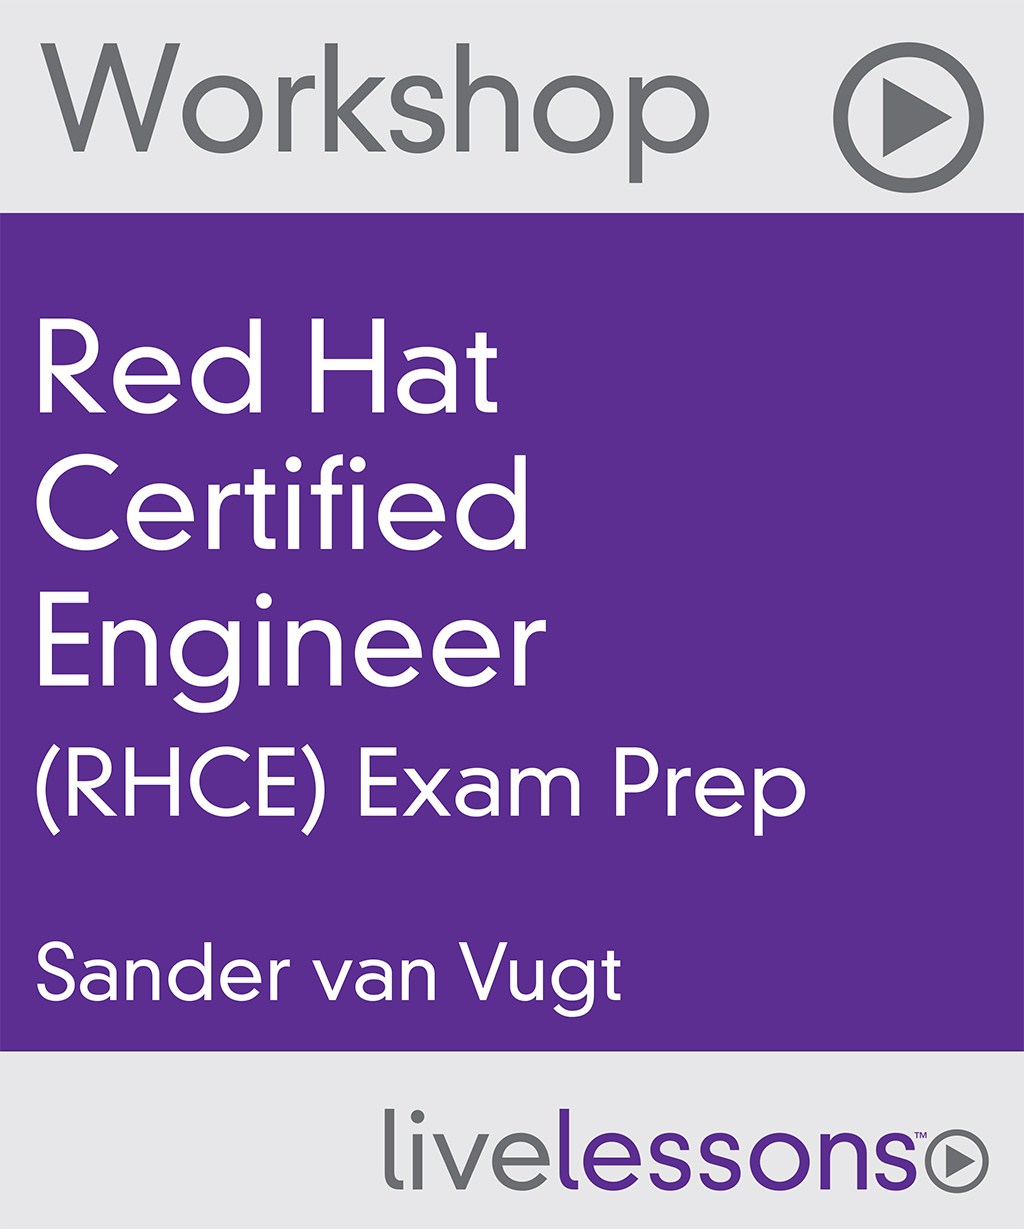 Red Hat Certified Engineer (RHCE) Exam Prep Video Workshop (Streaming)